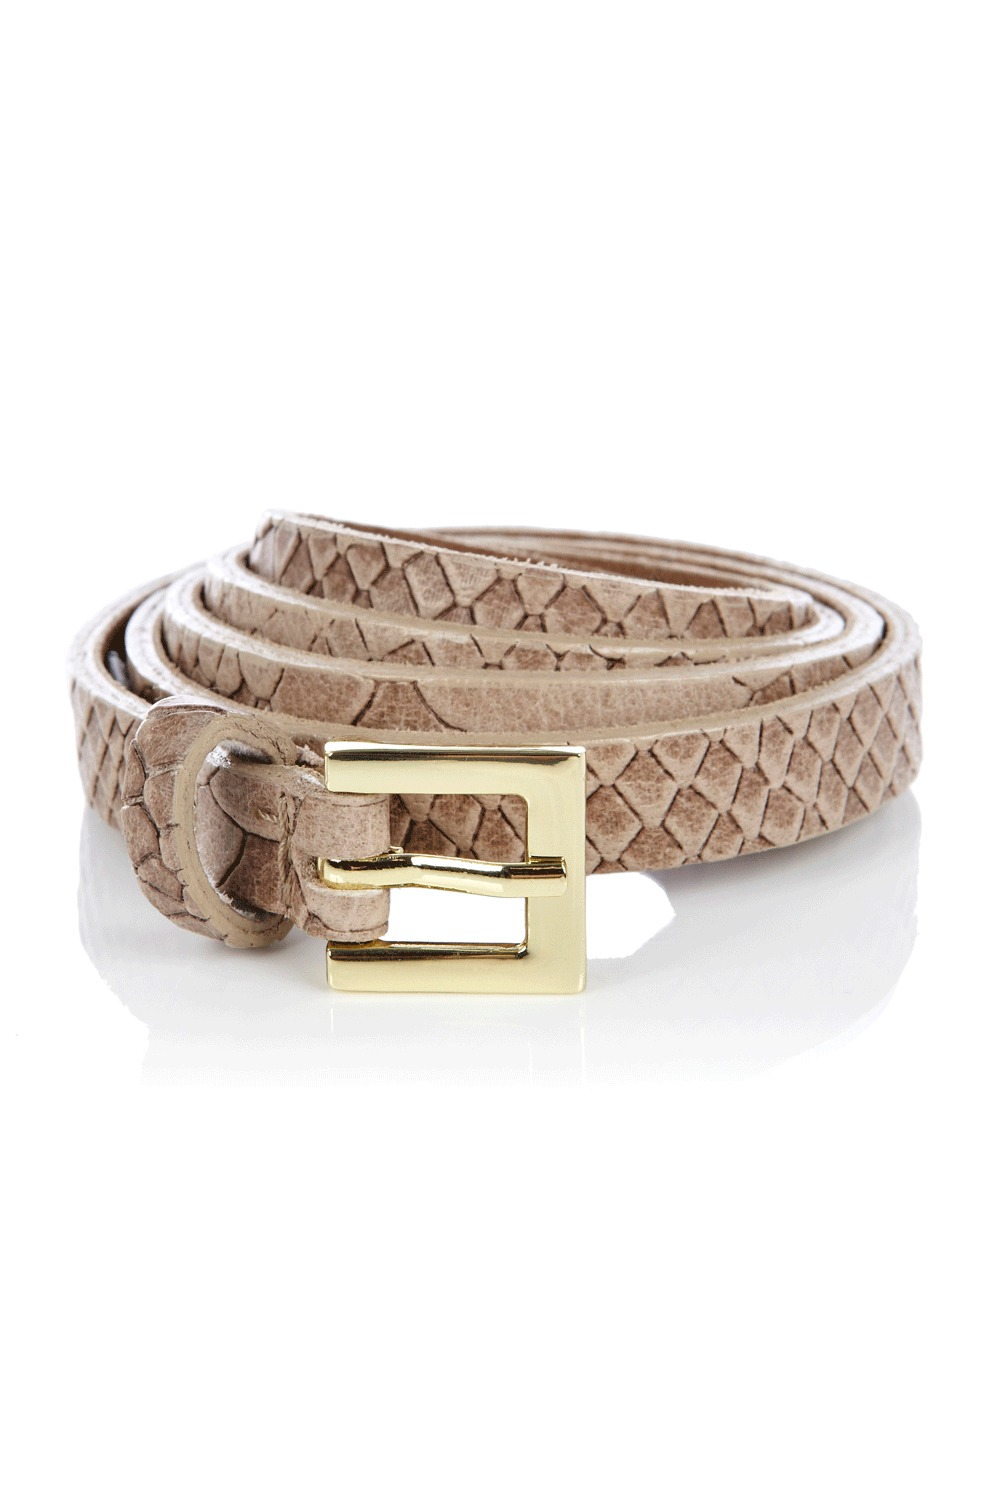 Snake Leather Belt - predominant colour: stone; type of pattern: light; style: classic; size: skinny; worn on: waist; material: leather; pattern: animal print